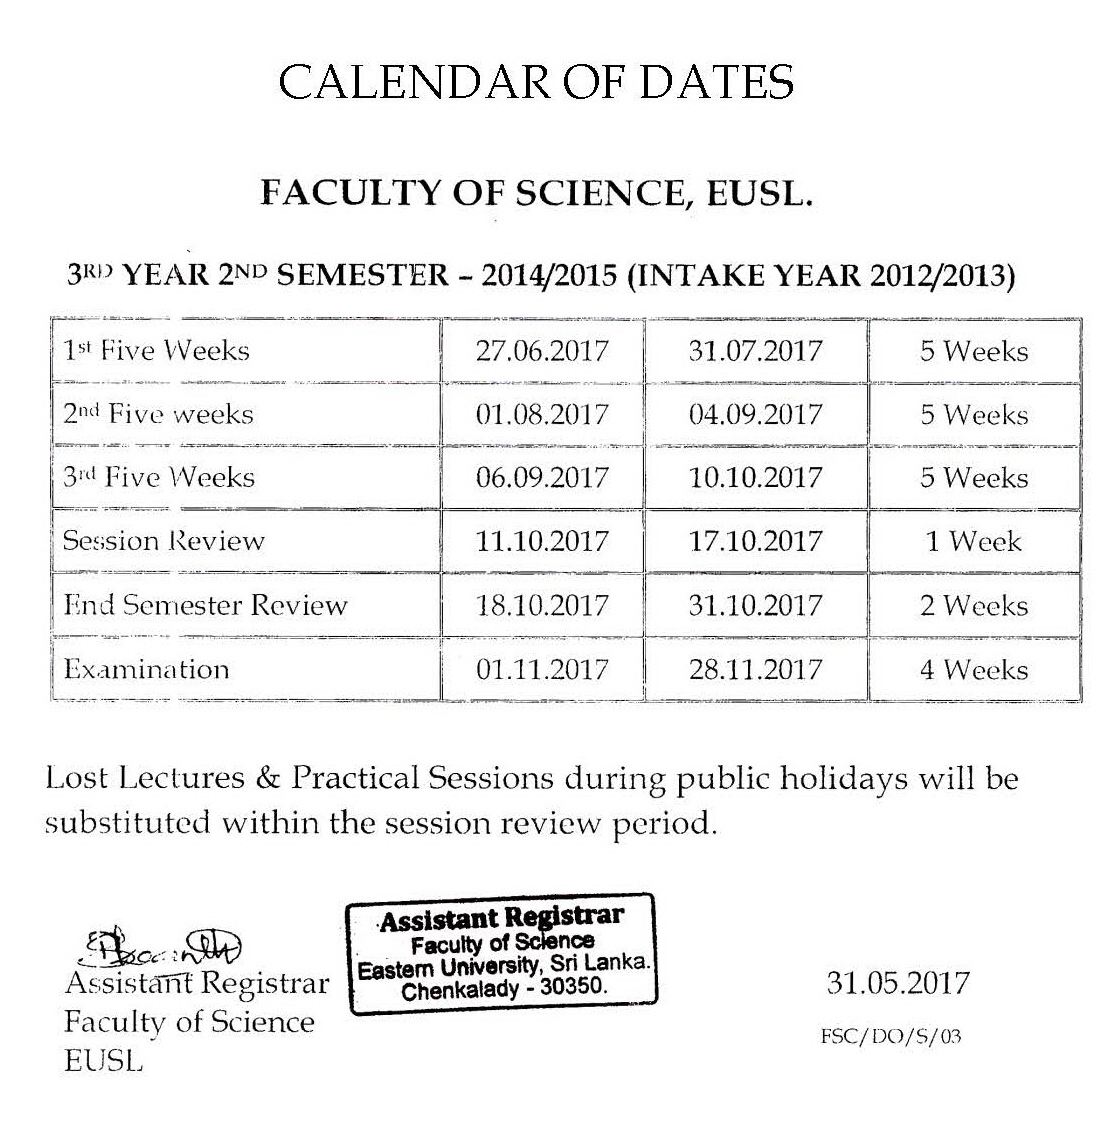 Calendar of Dates Year-3 Semester-2